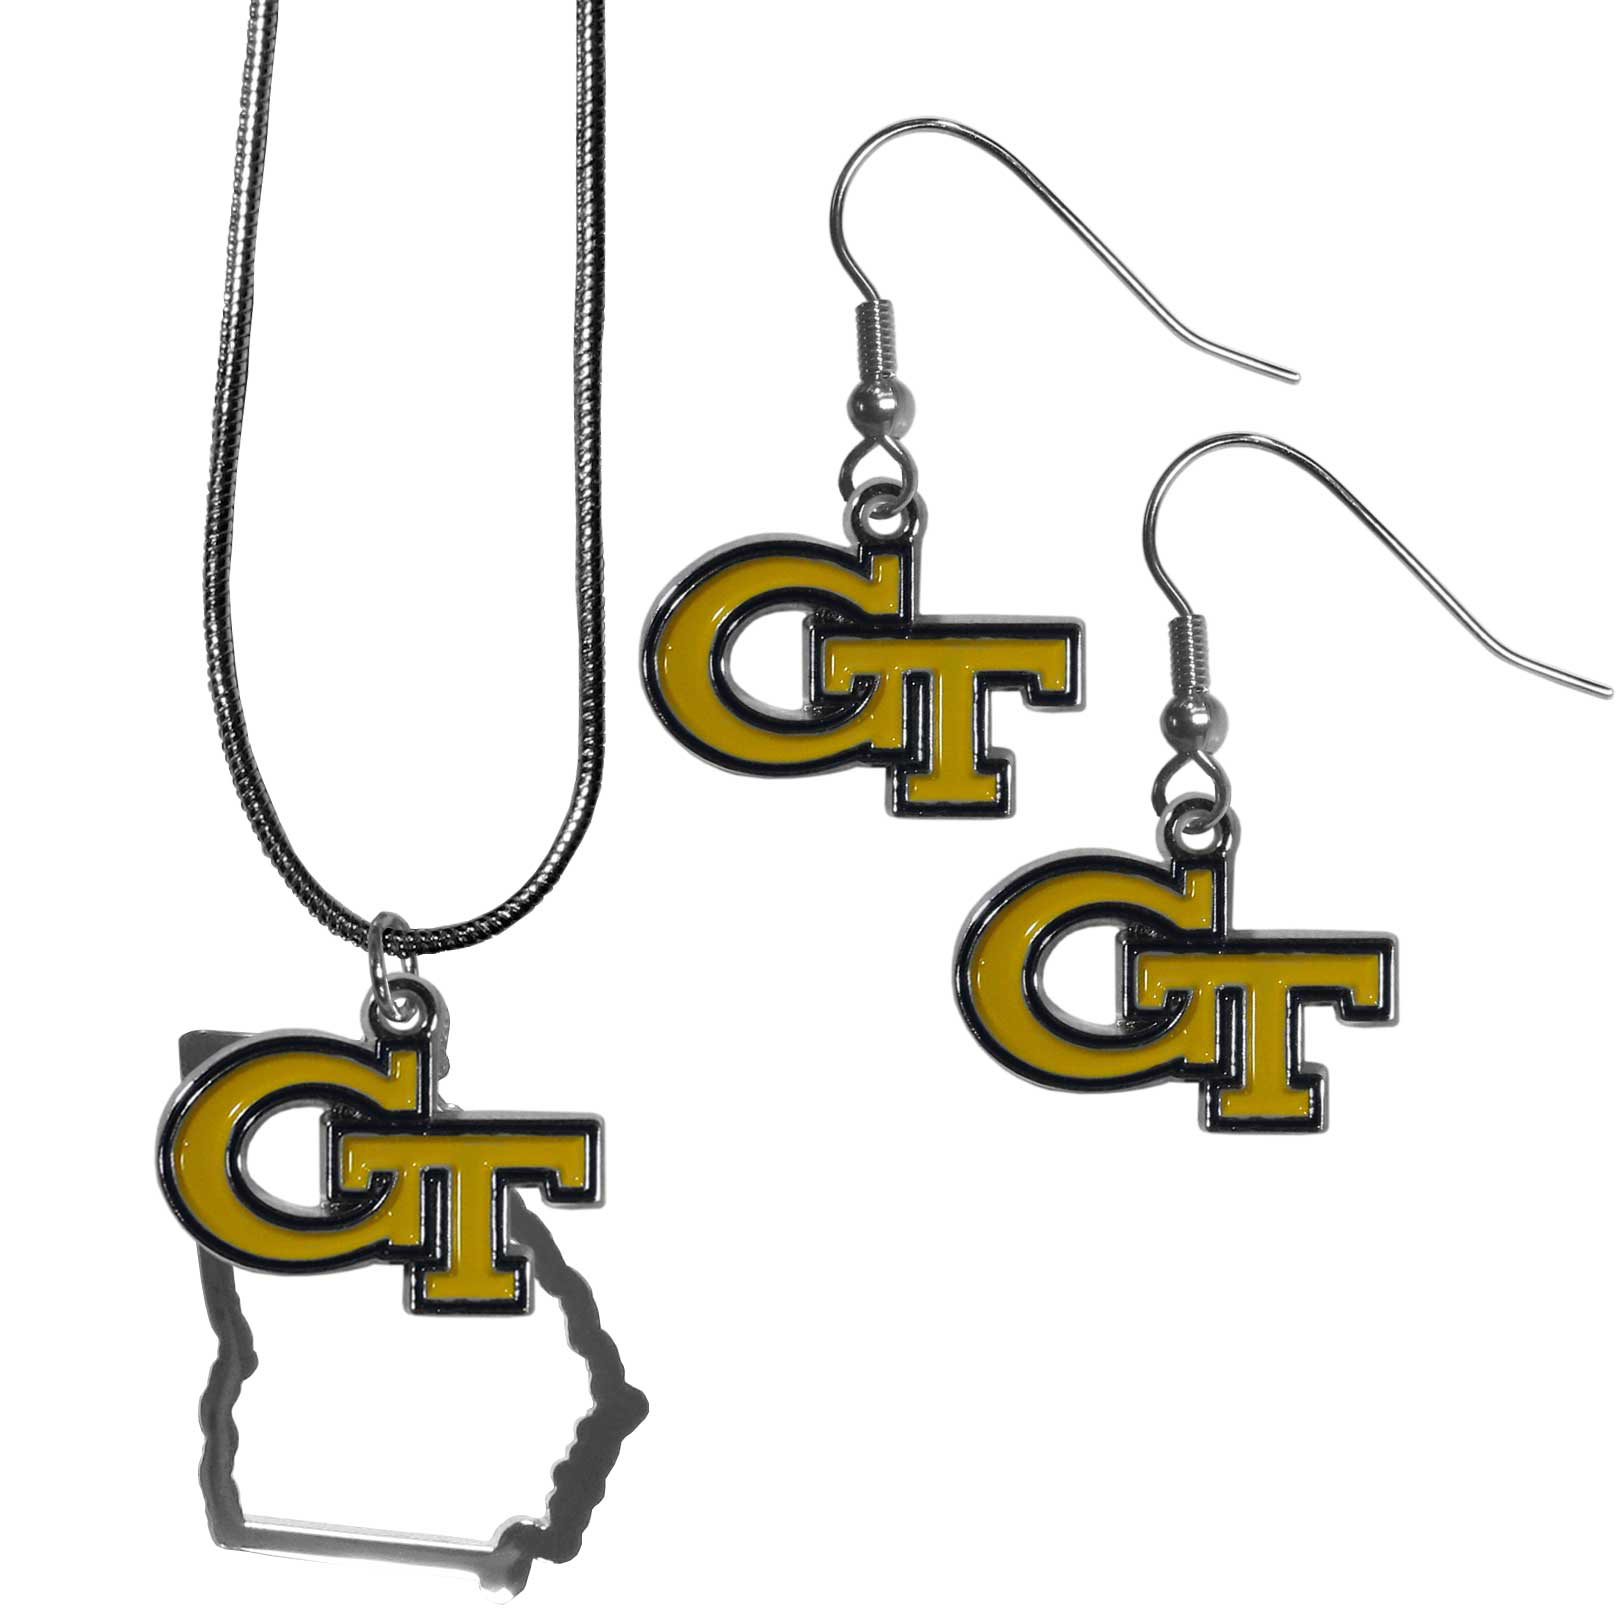 Georgia Tech Yellow Jackets Dangle Earrings and State Necklace Set - Get in on the trend! State themes are a trend that just keeps getting more popular and this jewelry set takes the state style and give it a sporty twist with a Georgia Tech Yellow Jackets necklace that features an Arizona state outline charm paired with a beautiful team charm and matching team charm dangle earrings. The earrings feature hypoallergenic fishhook posts that are nickel free.